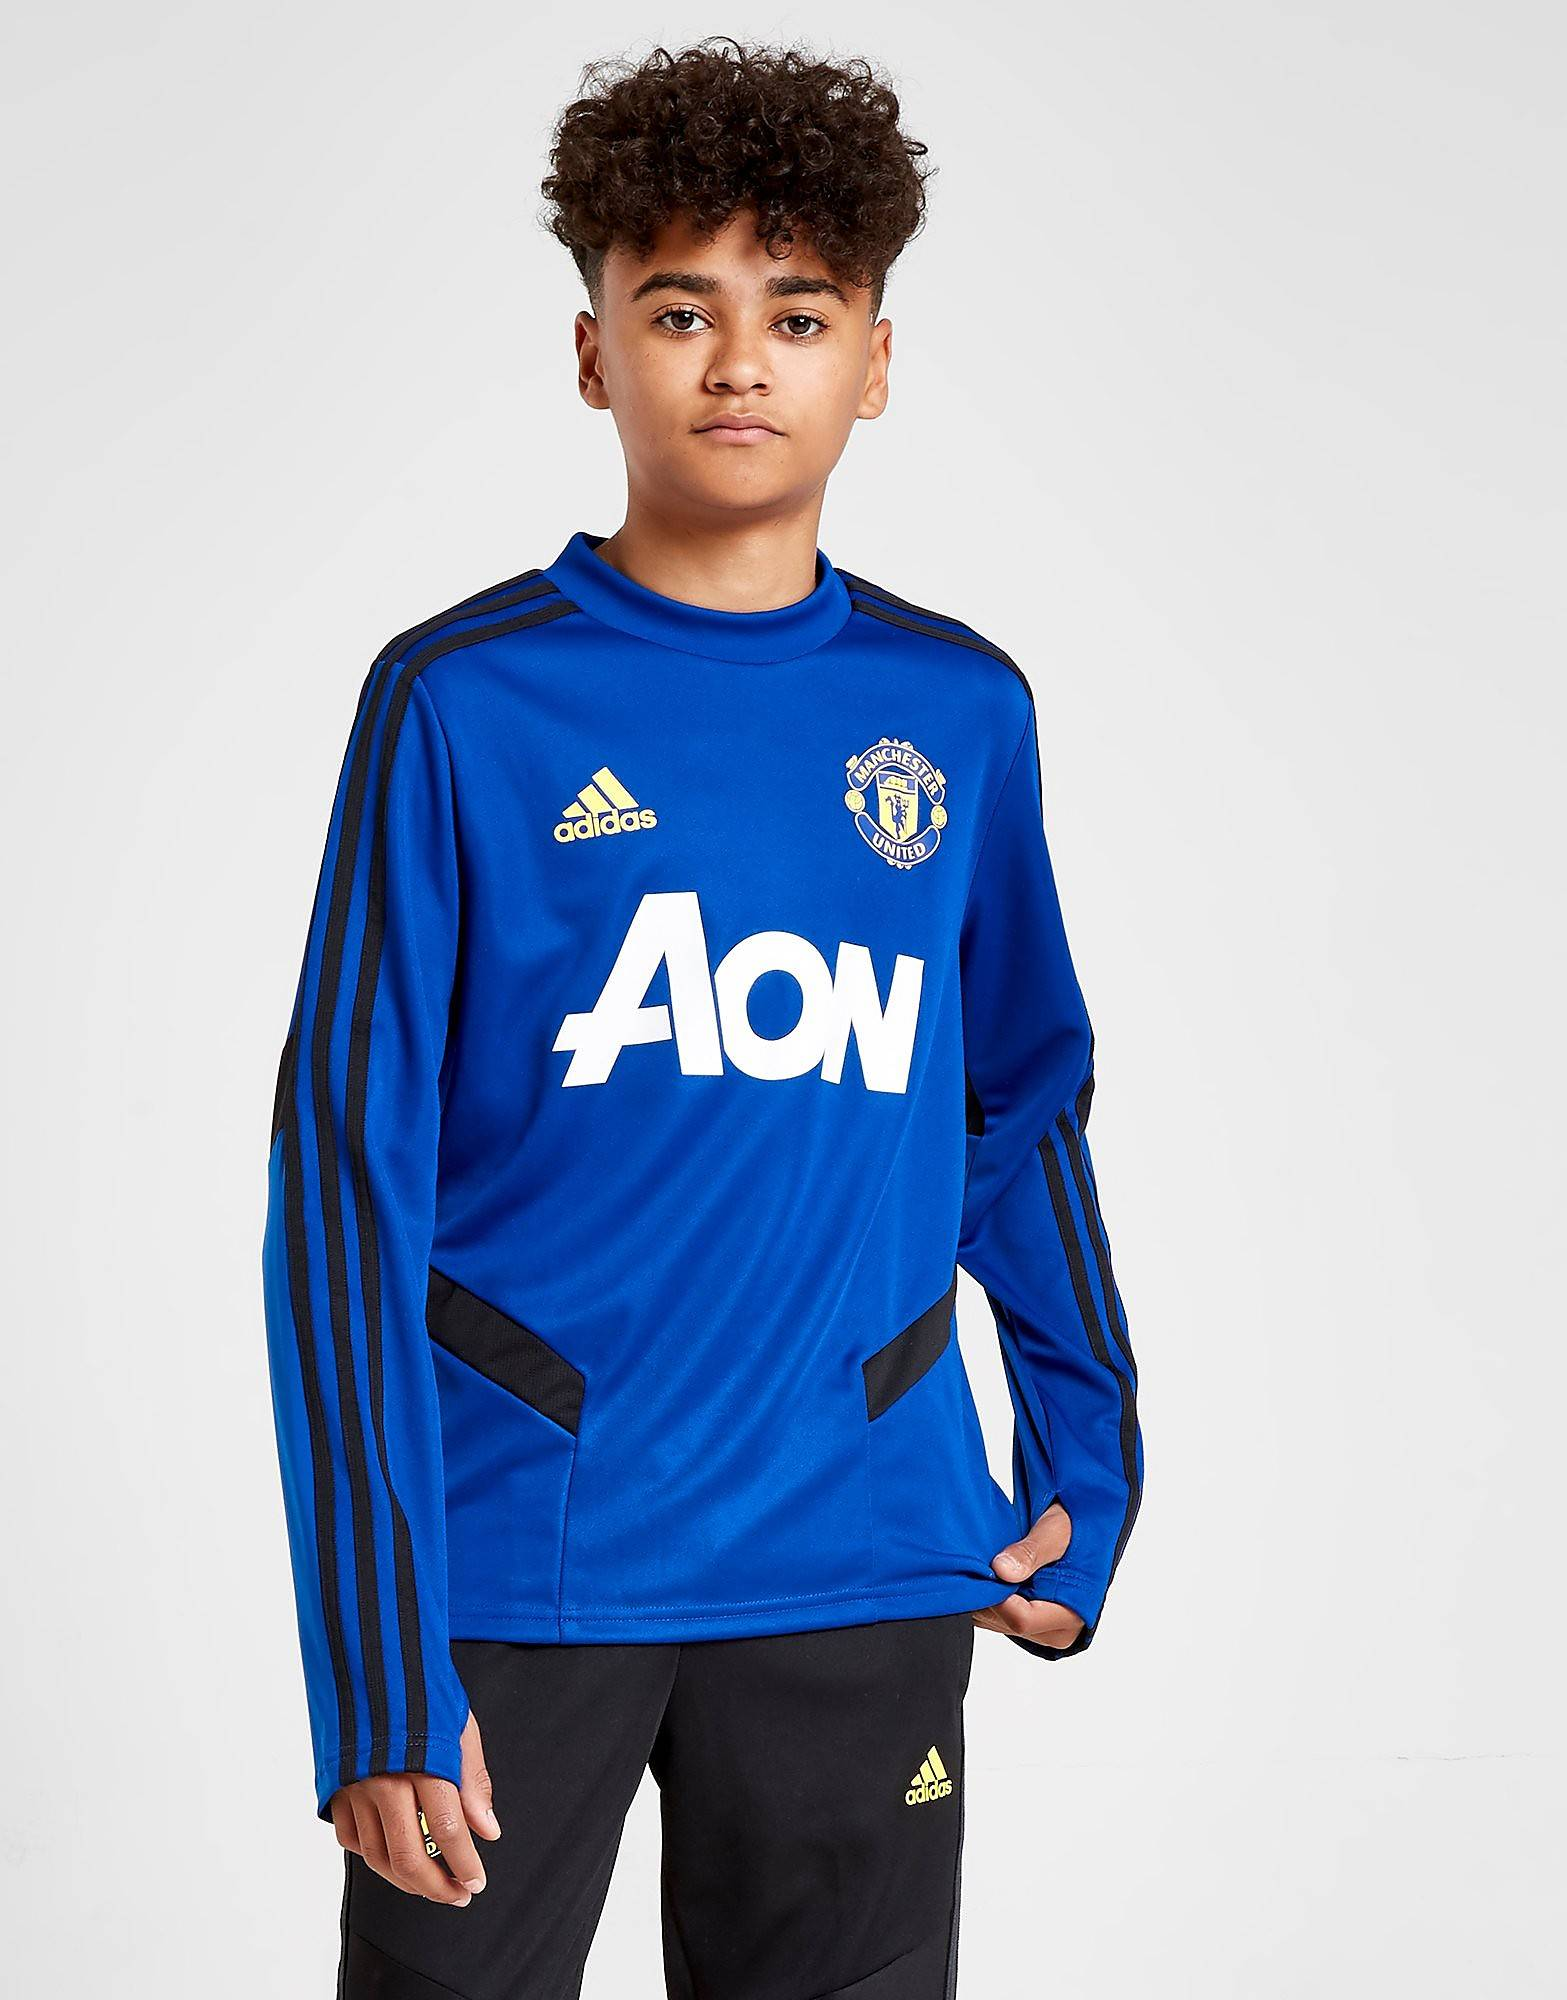 Image of Adidas Manchester United FC Treenipaita Juniorit - Kids, Sininen